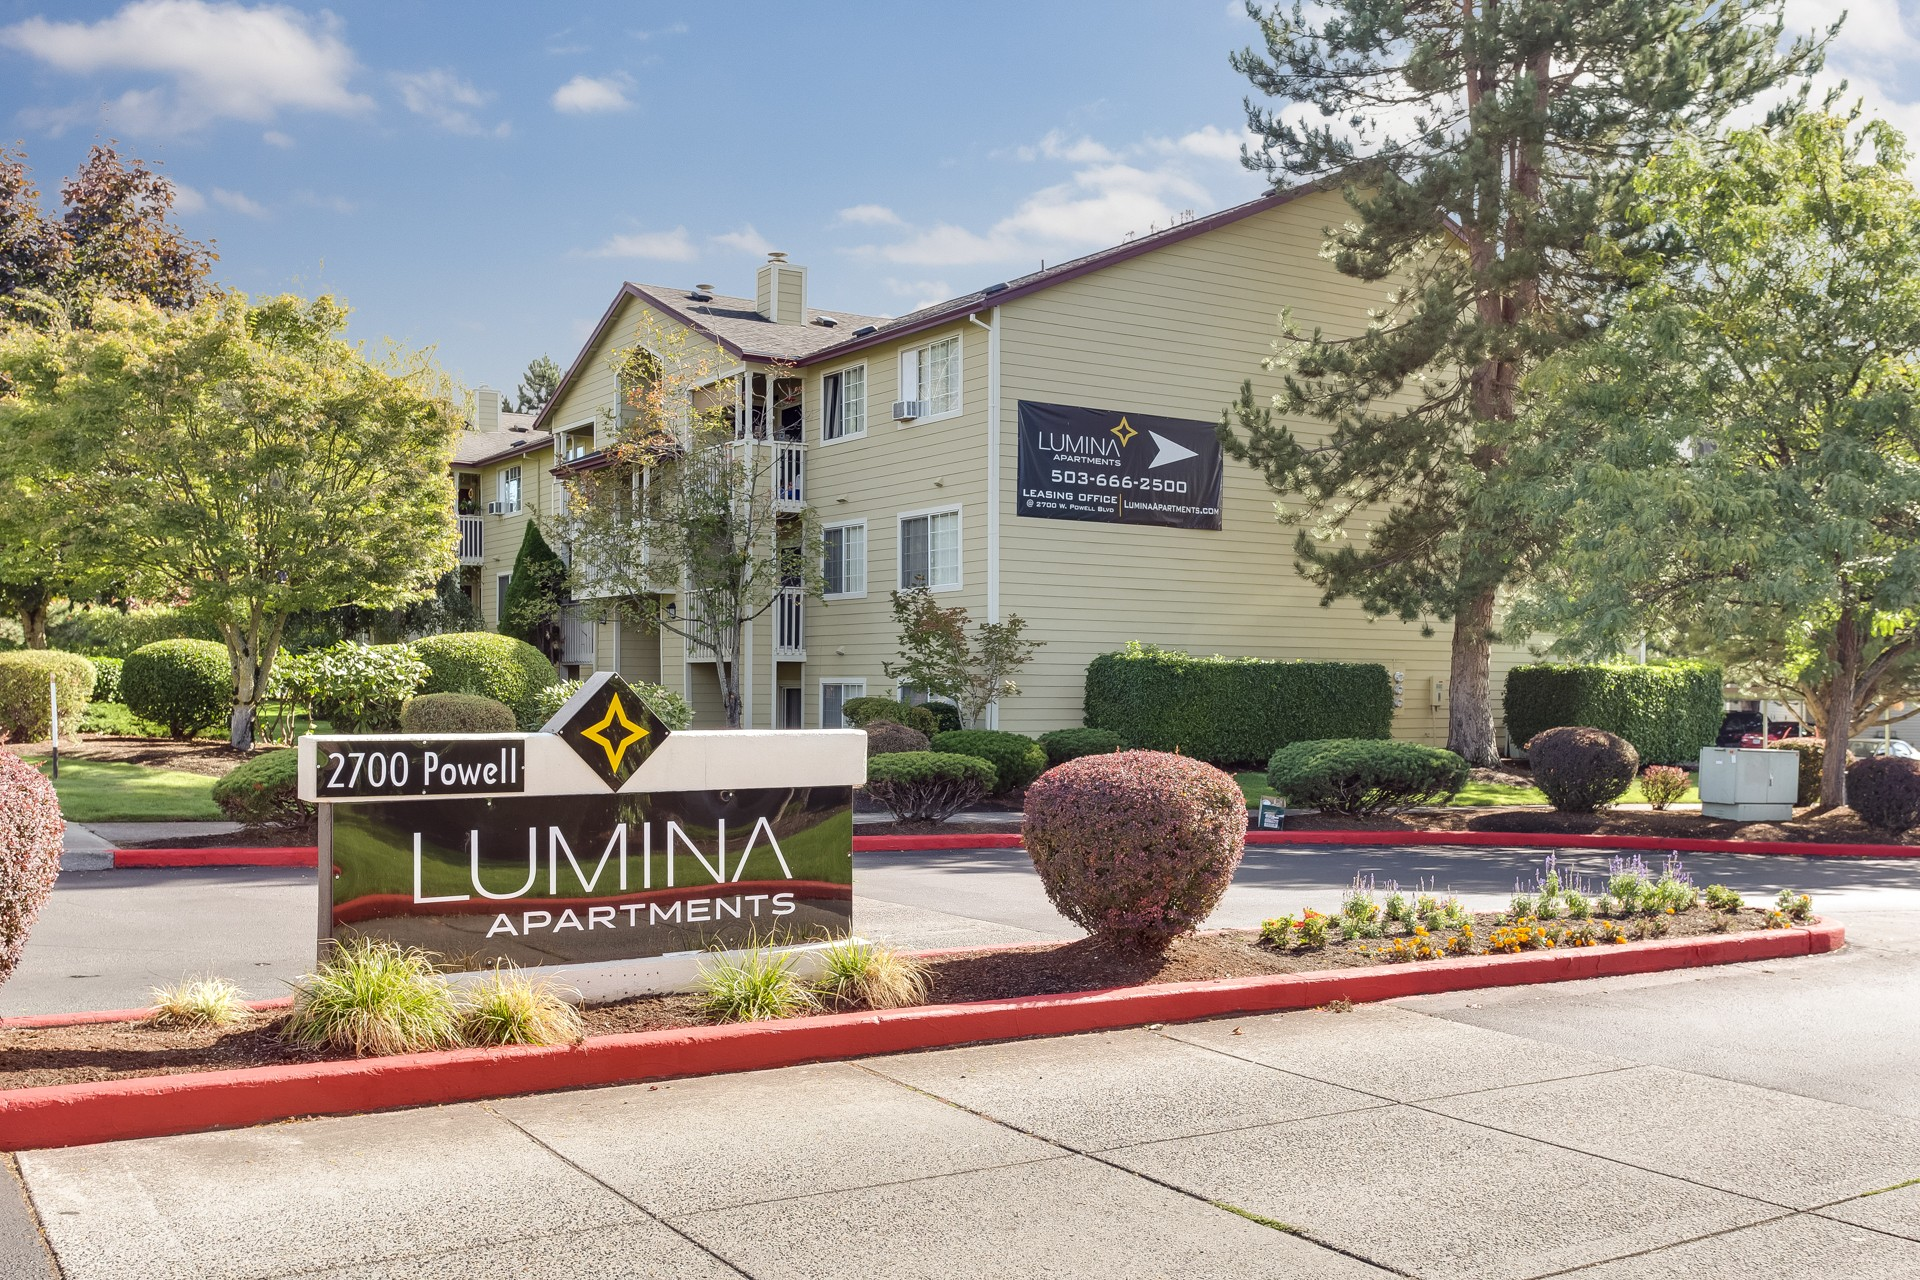 Lumina Apartments